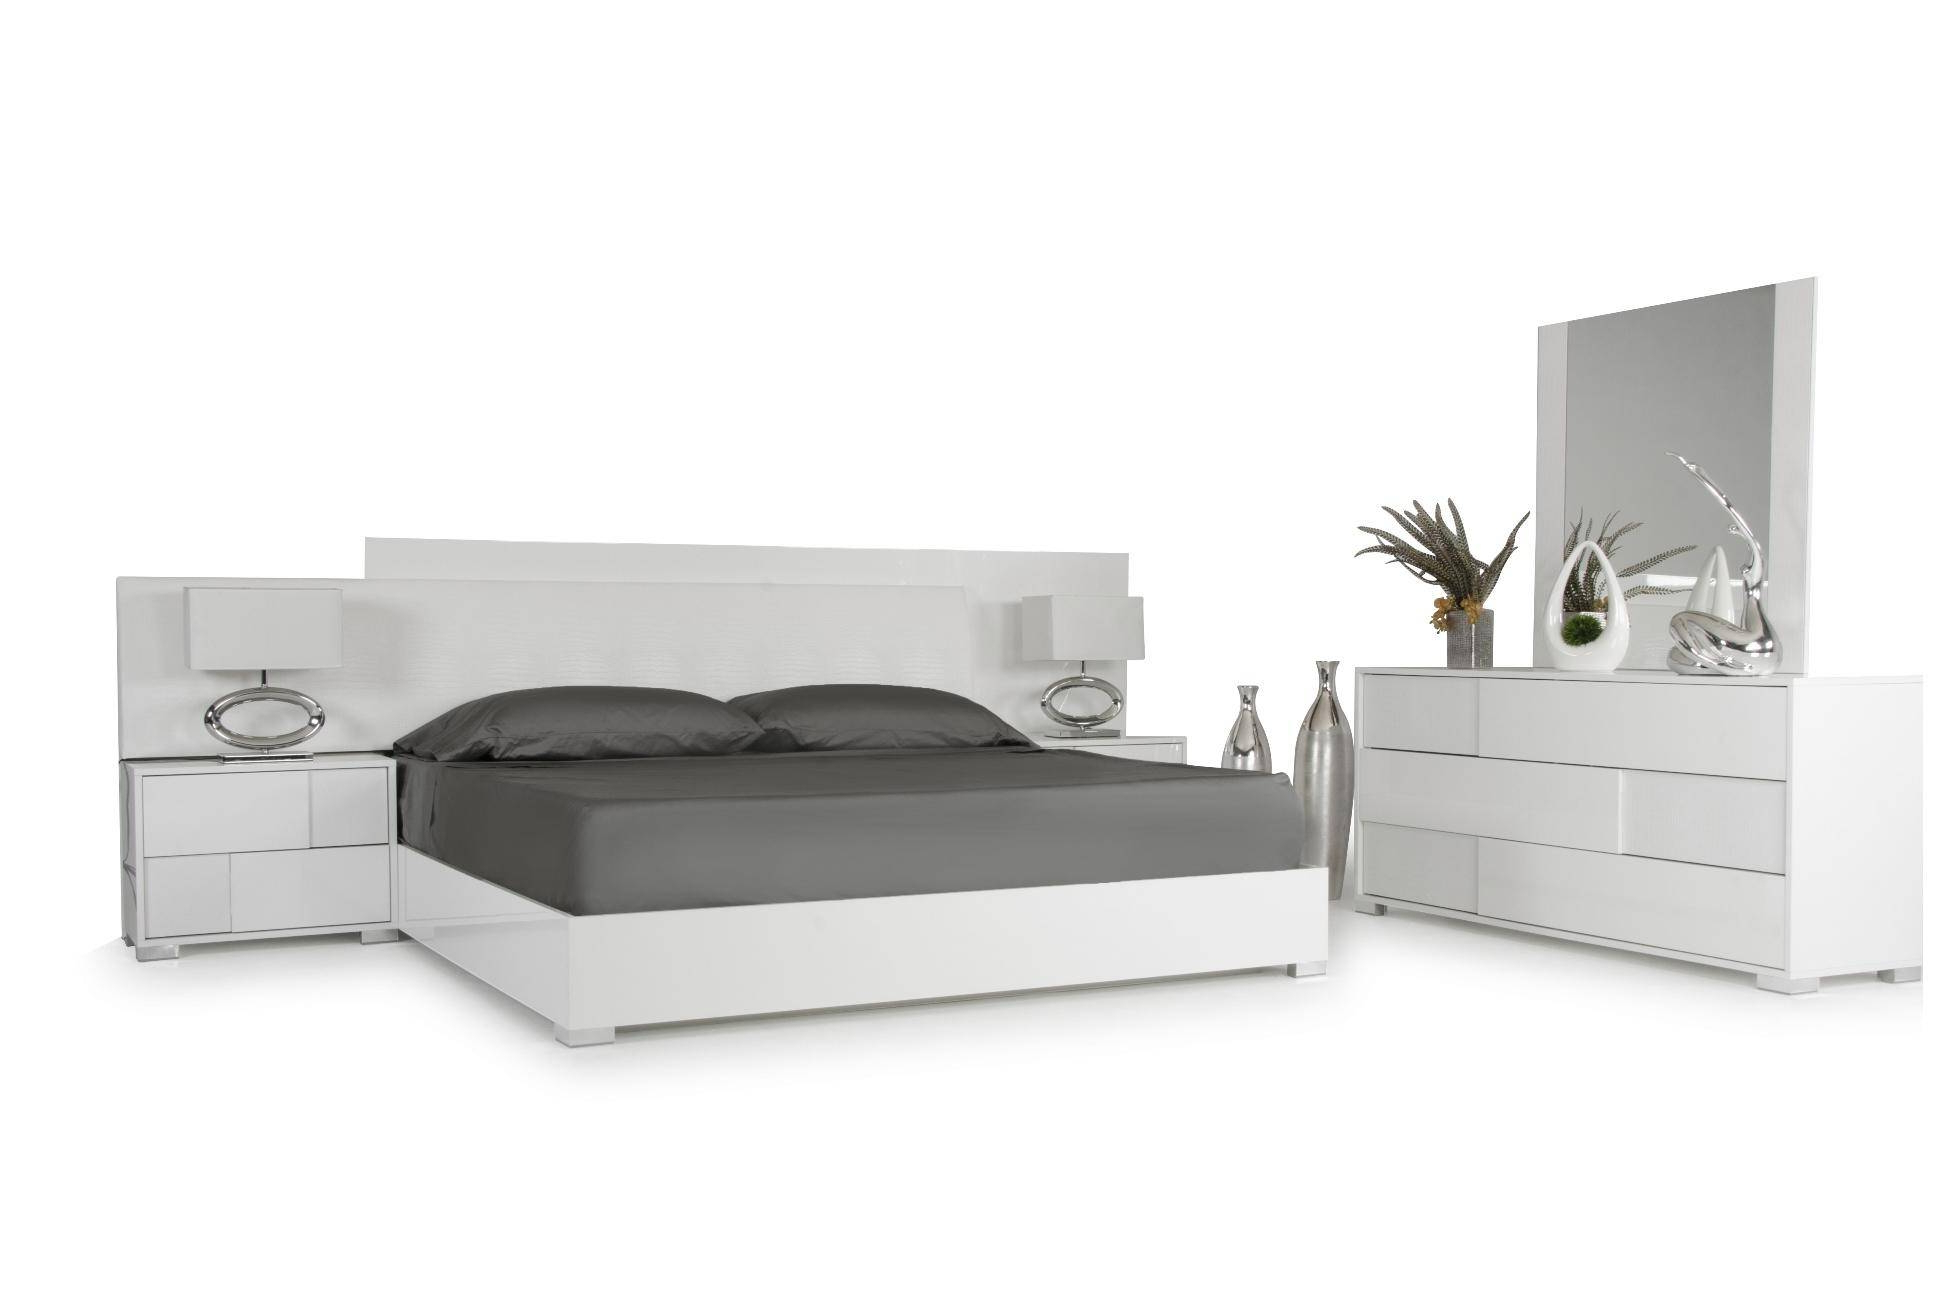 Buy Vig Modrest Monza Nightstand In White, Wood, Stainless With Monza Tv Stands (View 2 of 20)